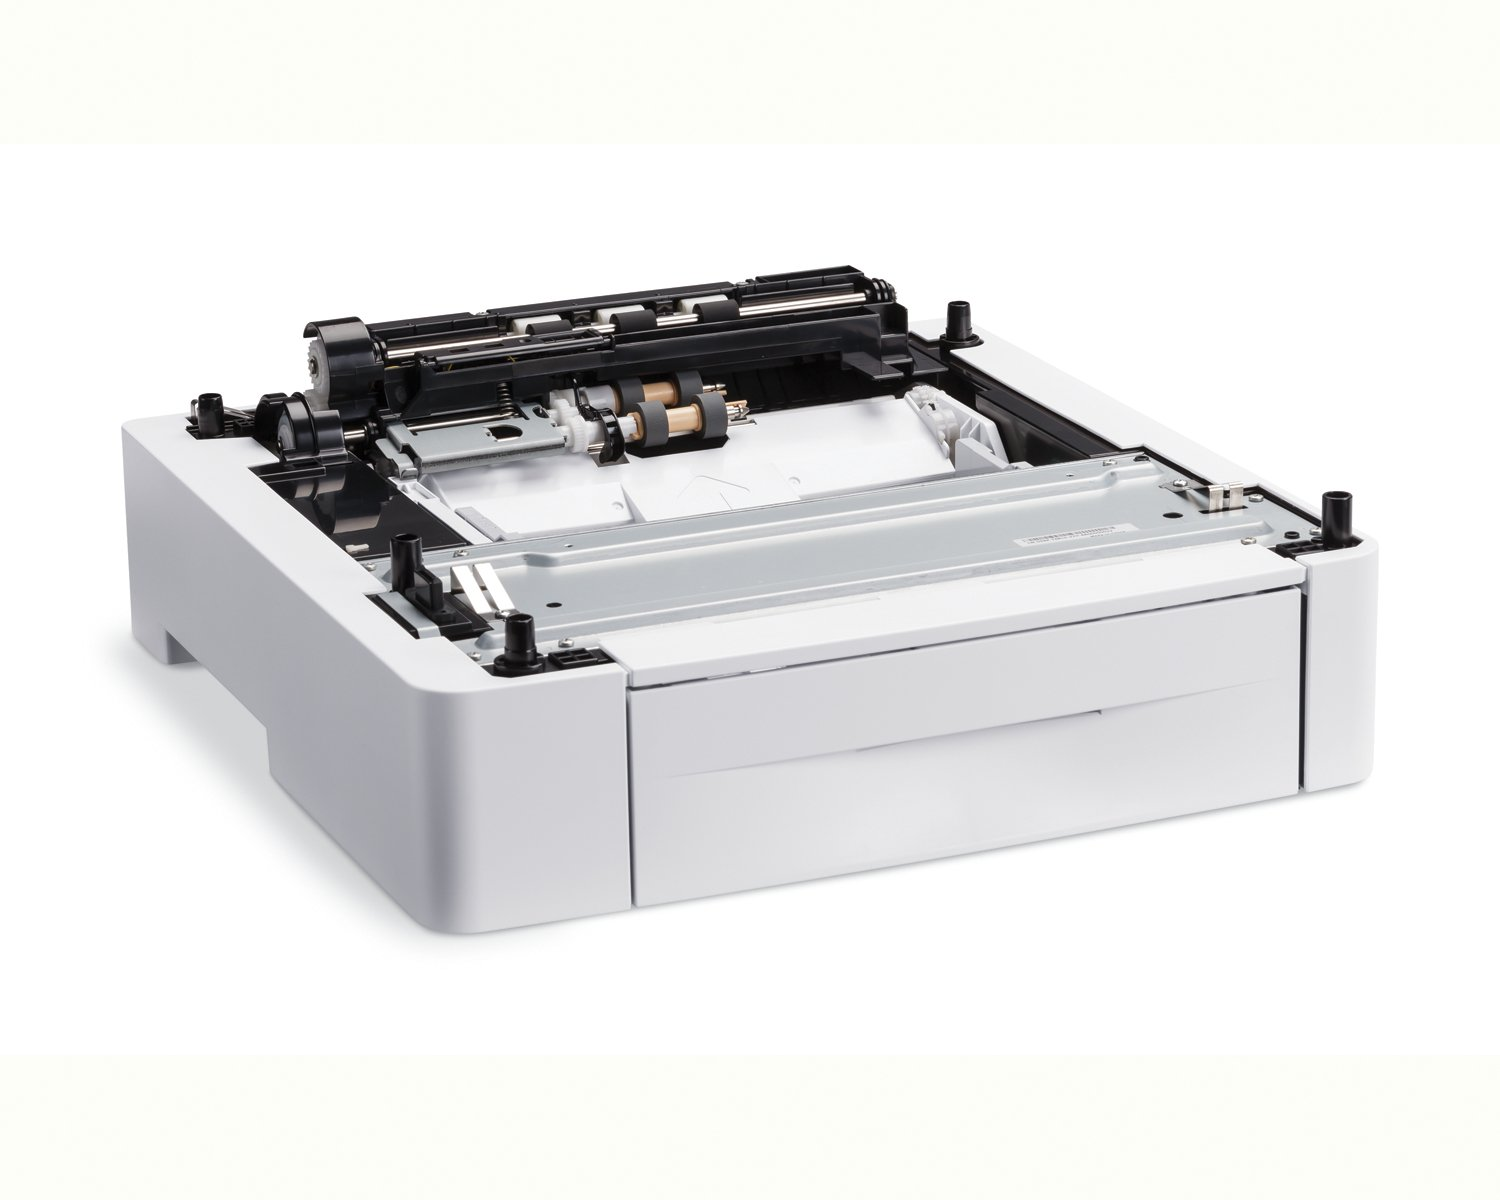 1 X 550 Sheet Tray for Phaser 3610 Xerox - Printers 497K13620